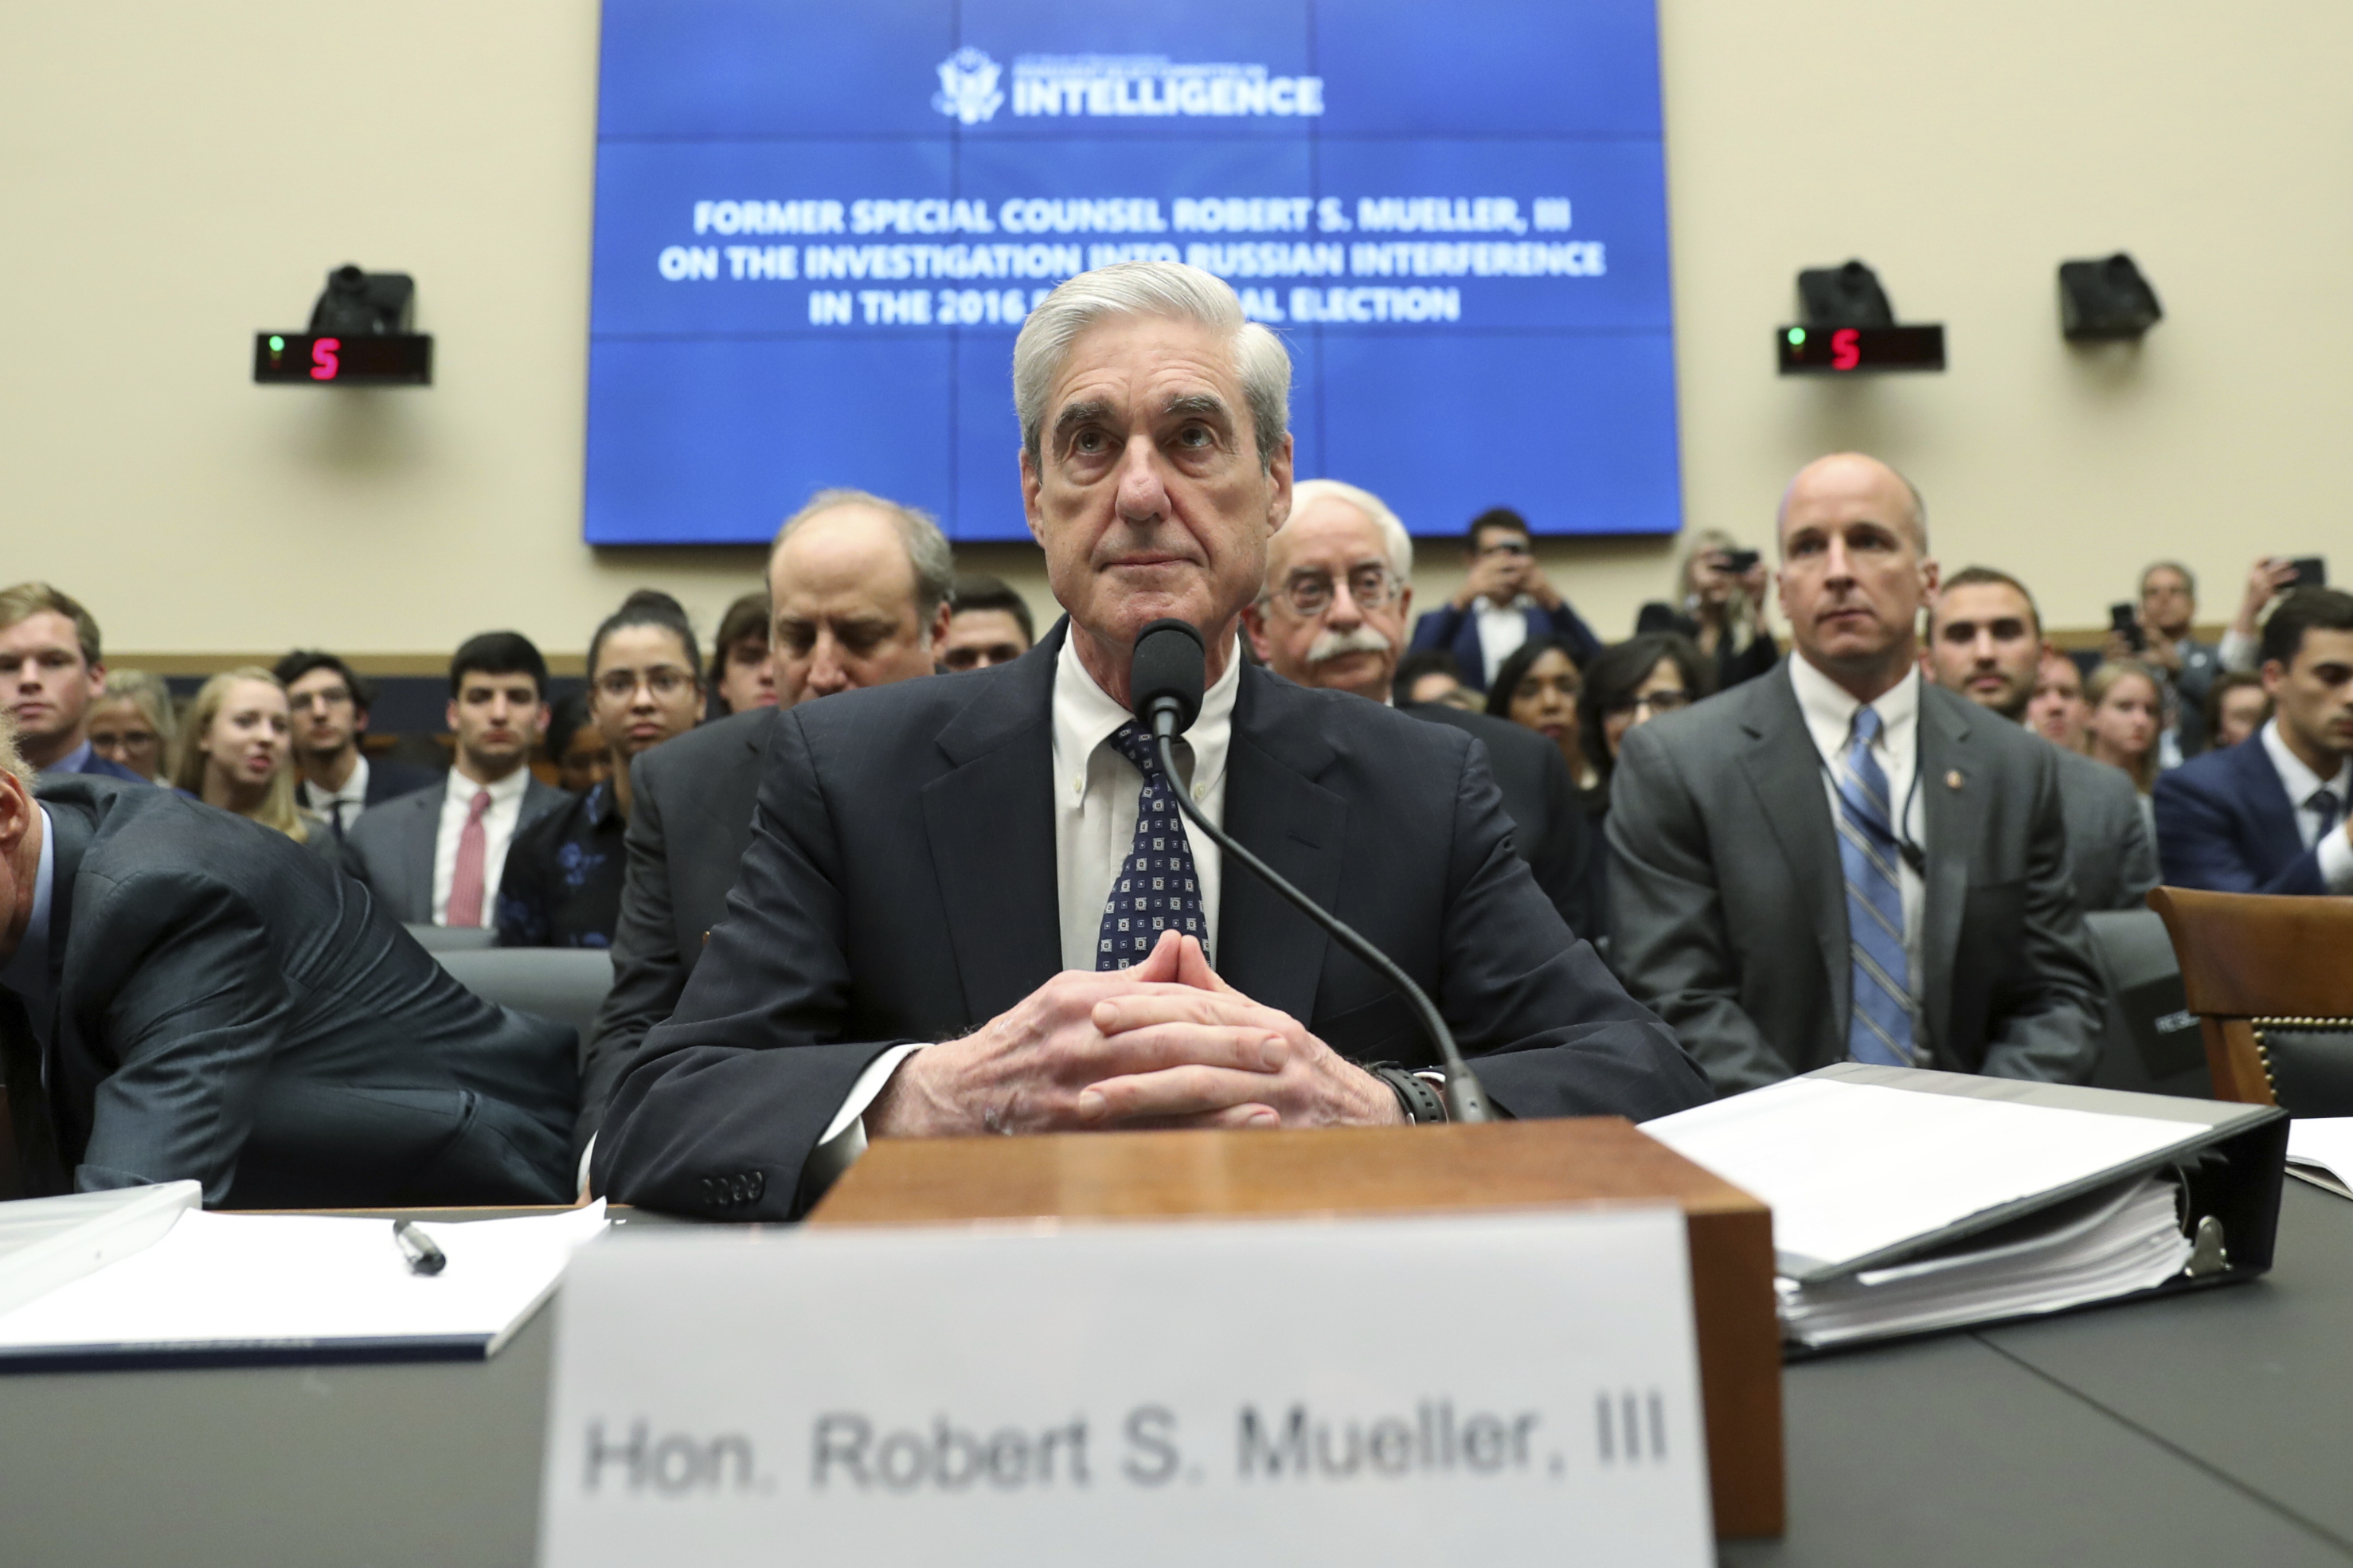 Matt Drudge says Robert Mueller looked 'dazed and confused;' time to 'drug test everyone' in D.C.